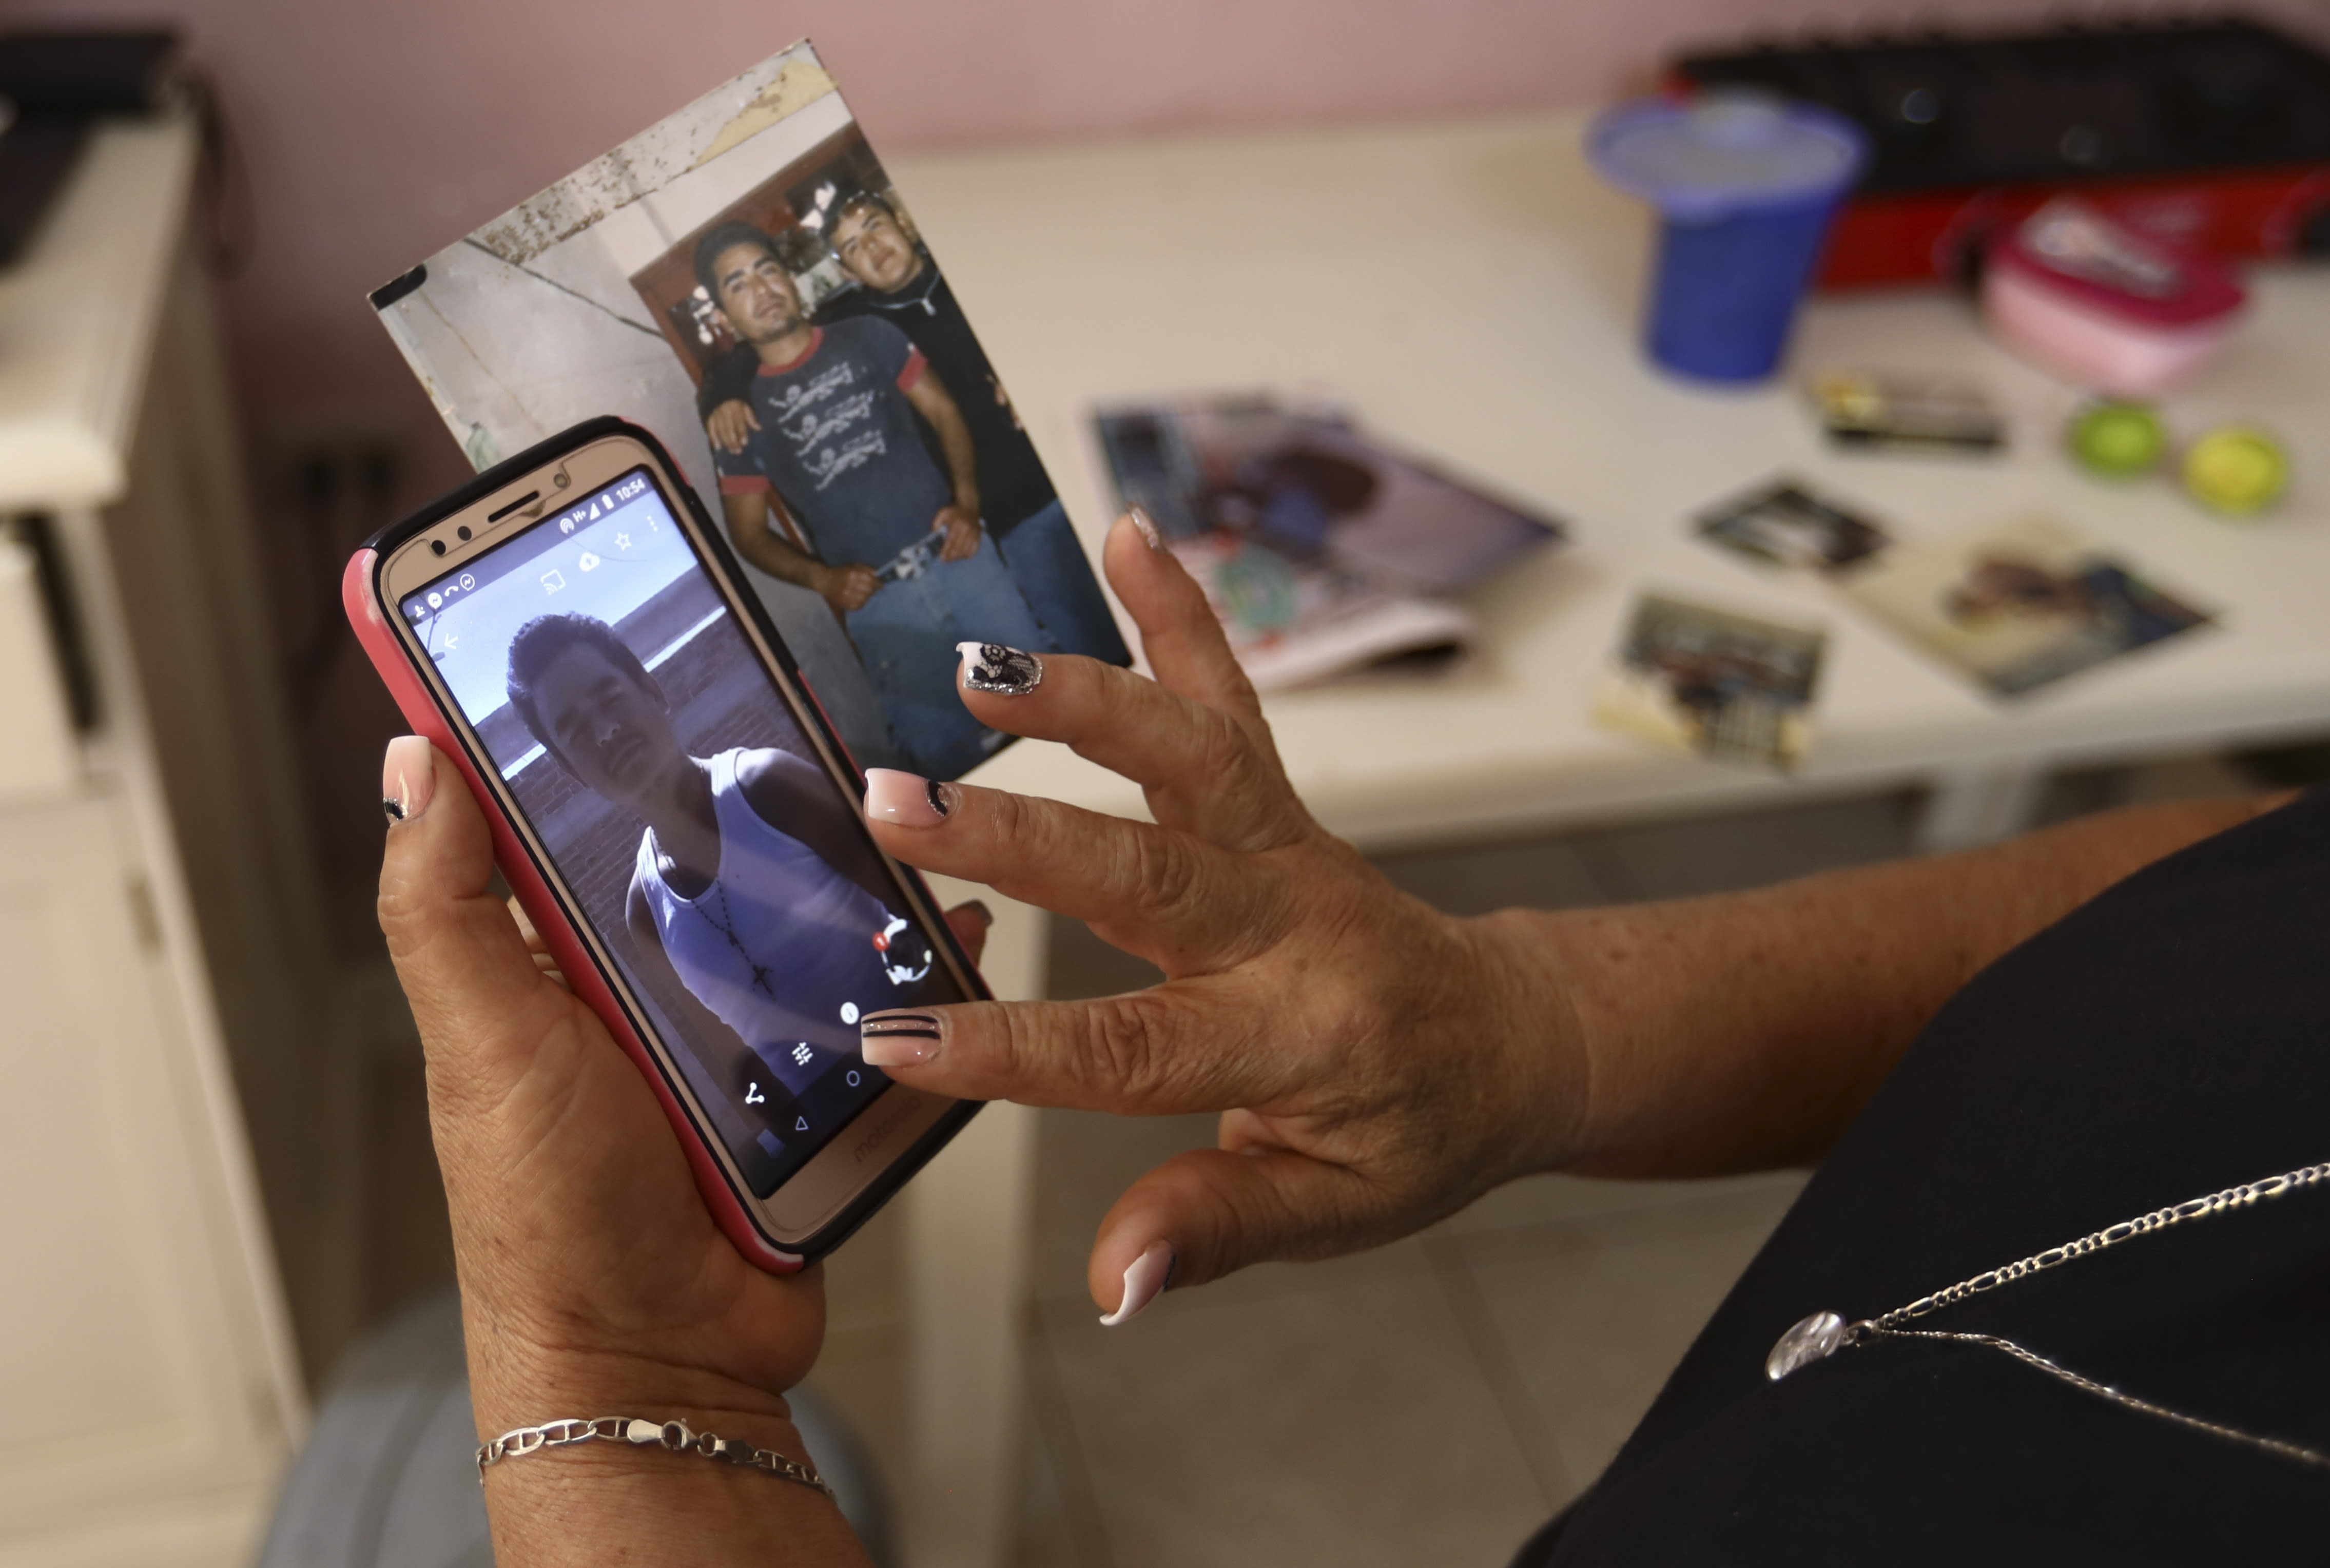 Rosa Alba Santoyo shows photos of two of her three adult children who died during an attack on a drug rehabilitation center where they were being treated, at her home in Irapuato, Mexico, Thursday, July 2, 2020. Gunmen burst into the drug rehabilitation center and opened fire Wednesday, killing 24 people and wounding seven, authorities said. (AP Photo/Eduardo Verdugo)